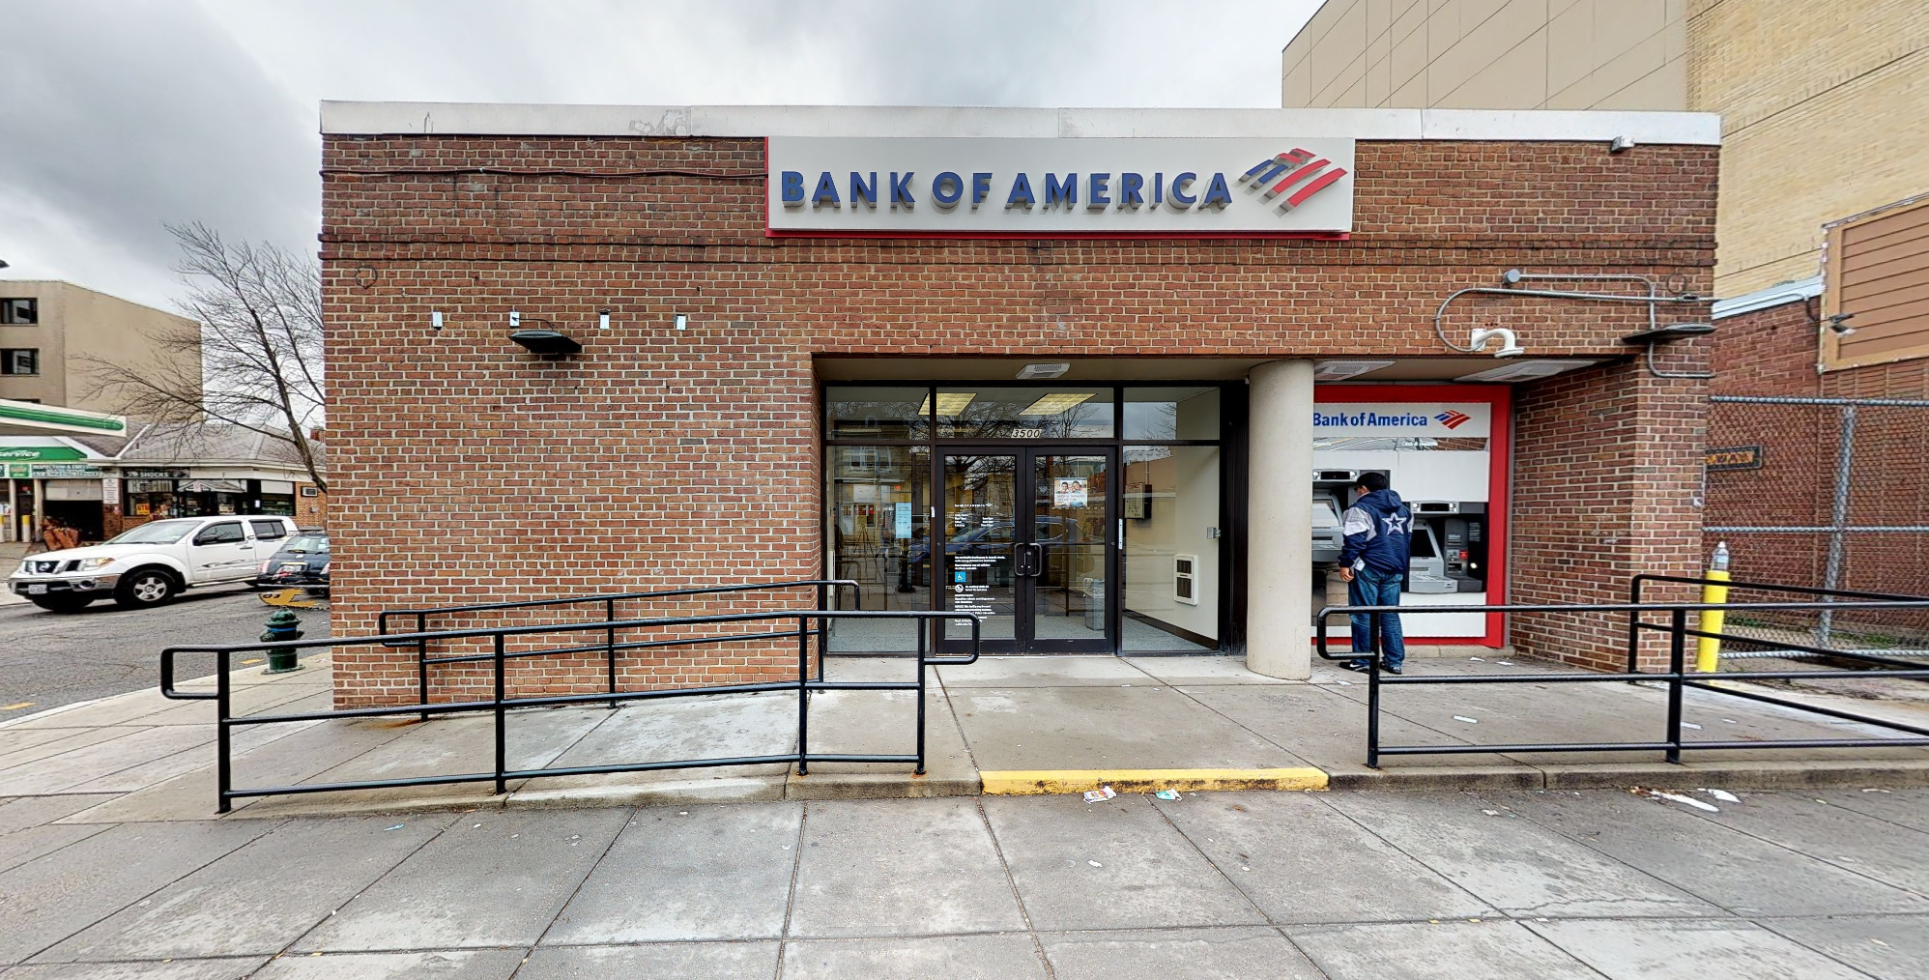 Bank of America financial center with walk-up ATM   3500 Georgia Ave NW, Washington, DC 20010